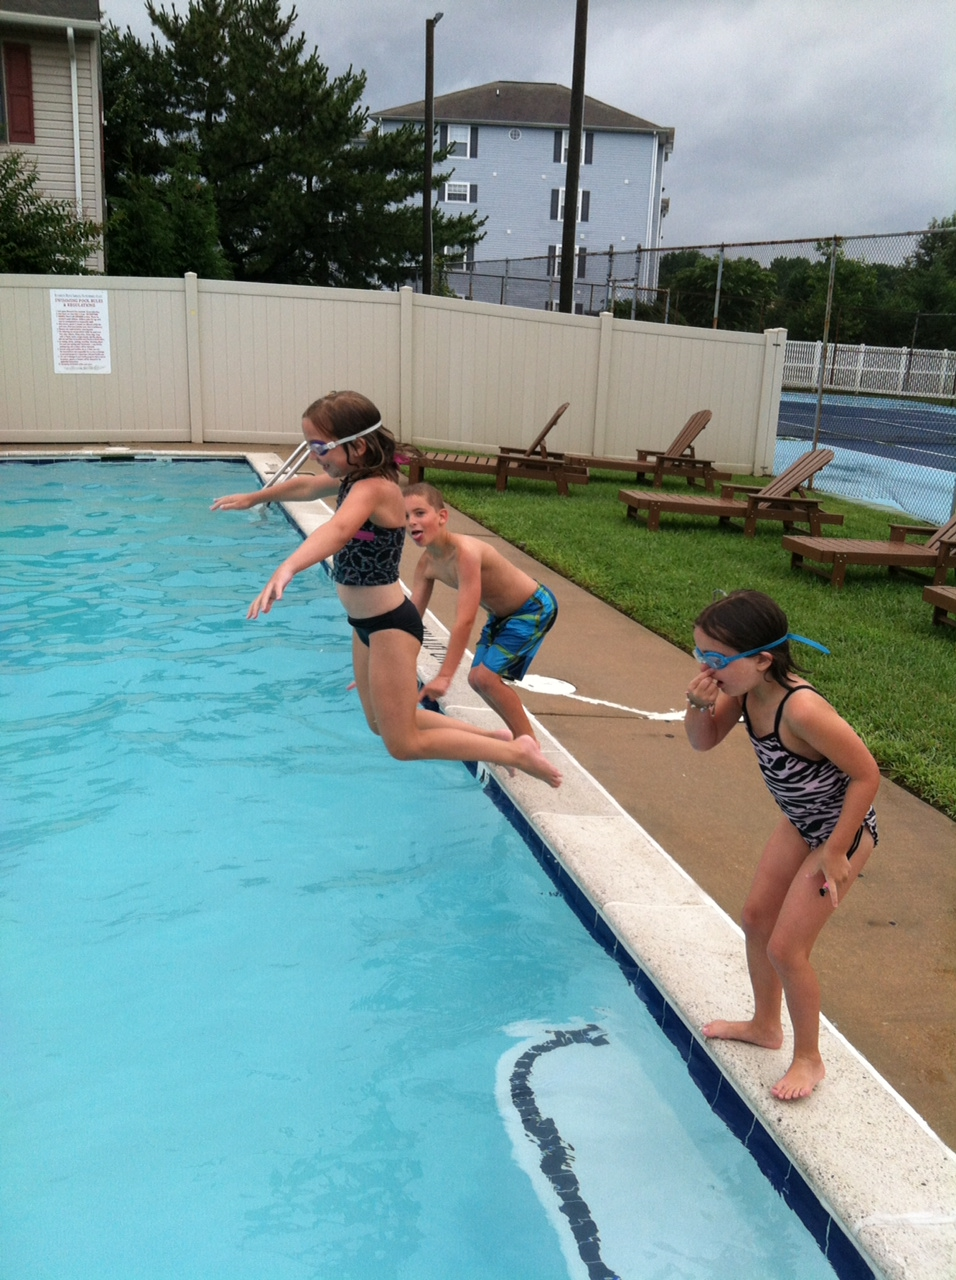 Water Recreation Facility Licenses Health